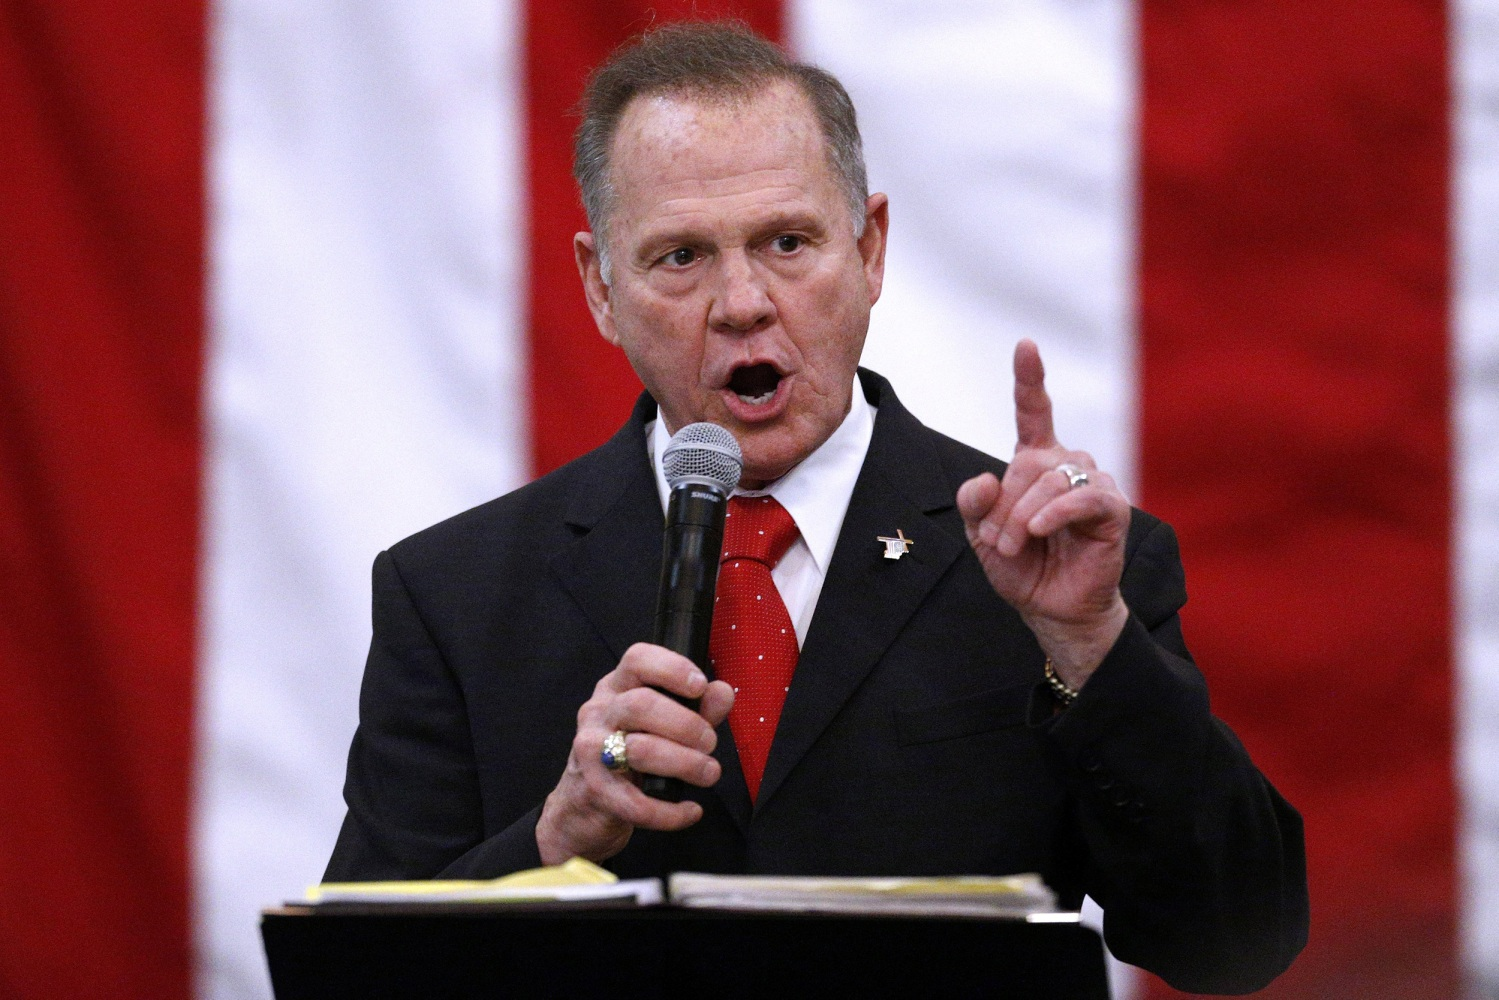 Roy Moore's request to halt elect certification denied by judge